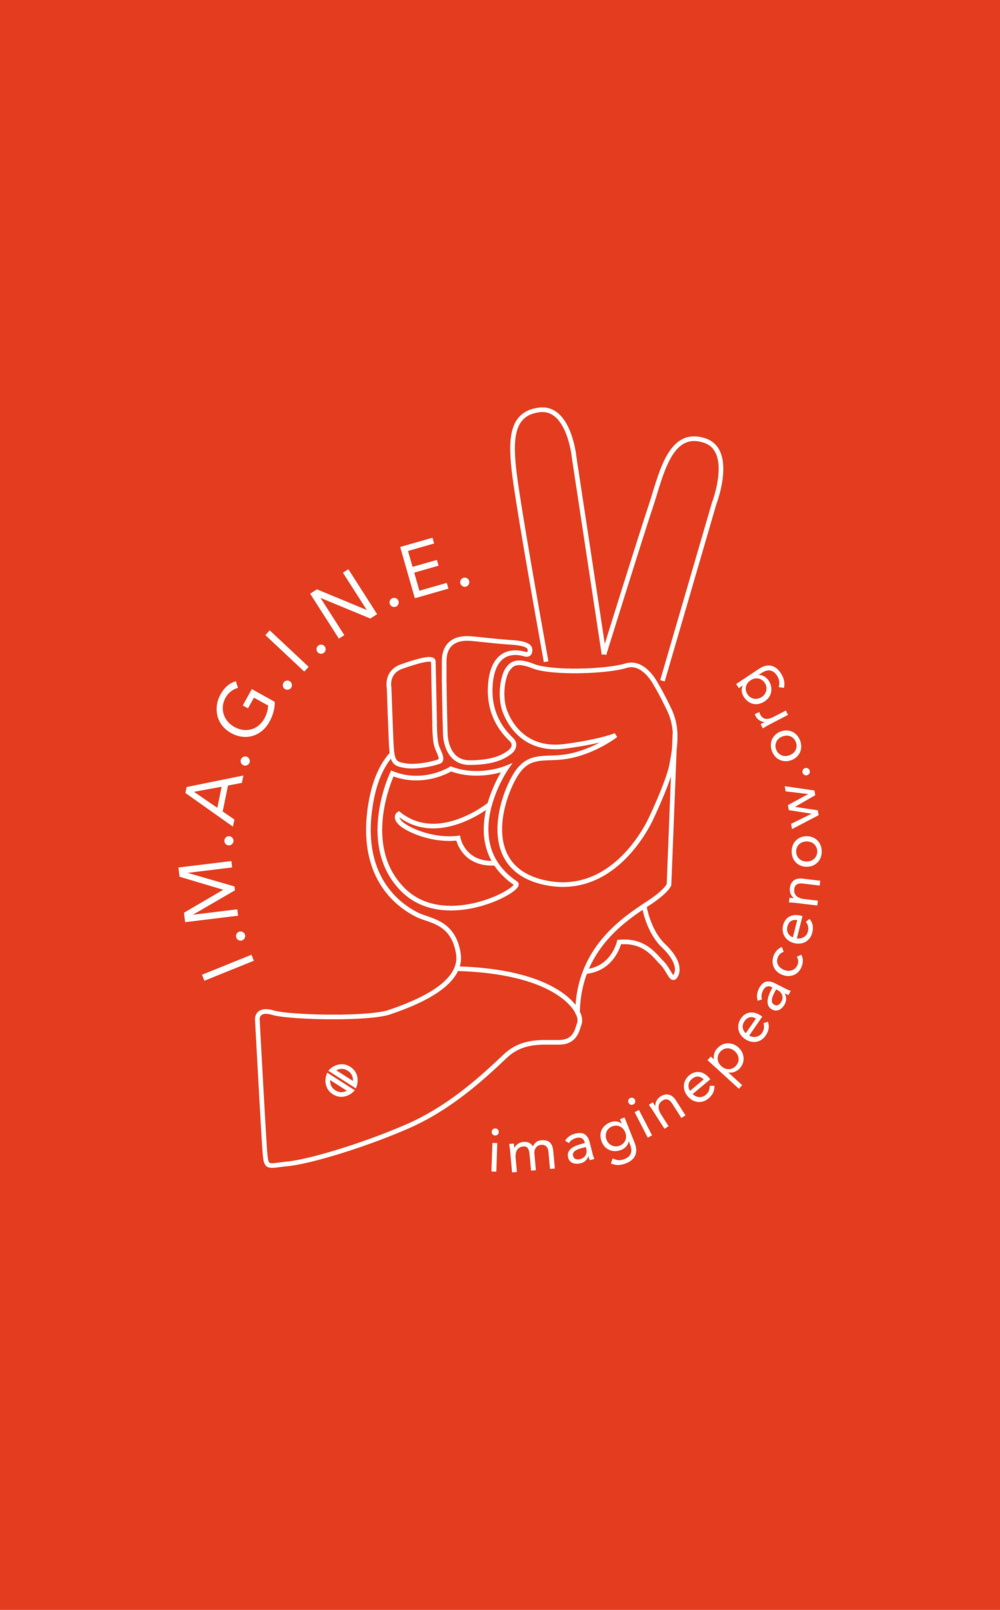 Imagine Peace Now Book, logo, logo design, graphic design, graphic designer, Rhode Island based graphic designer